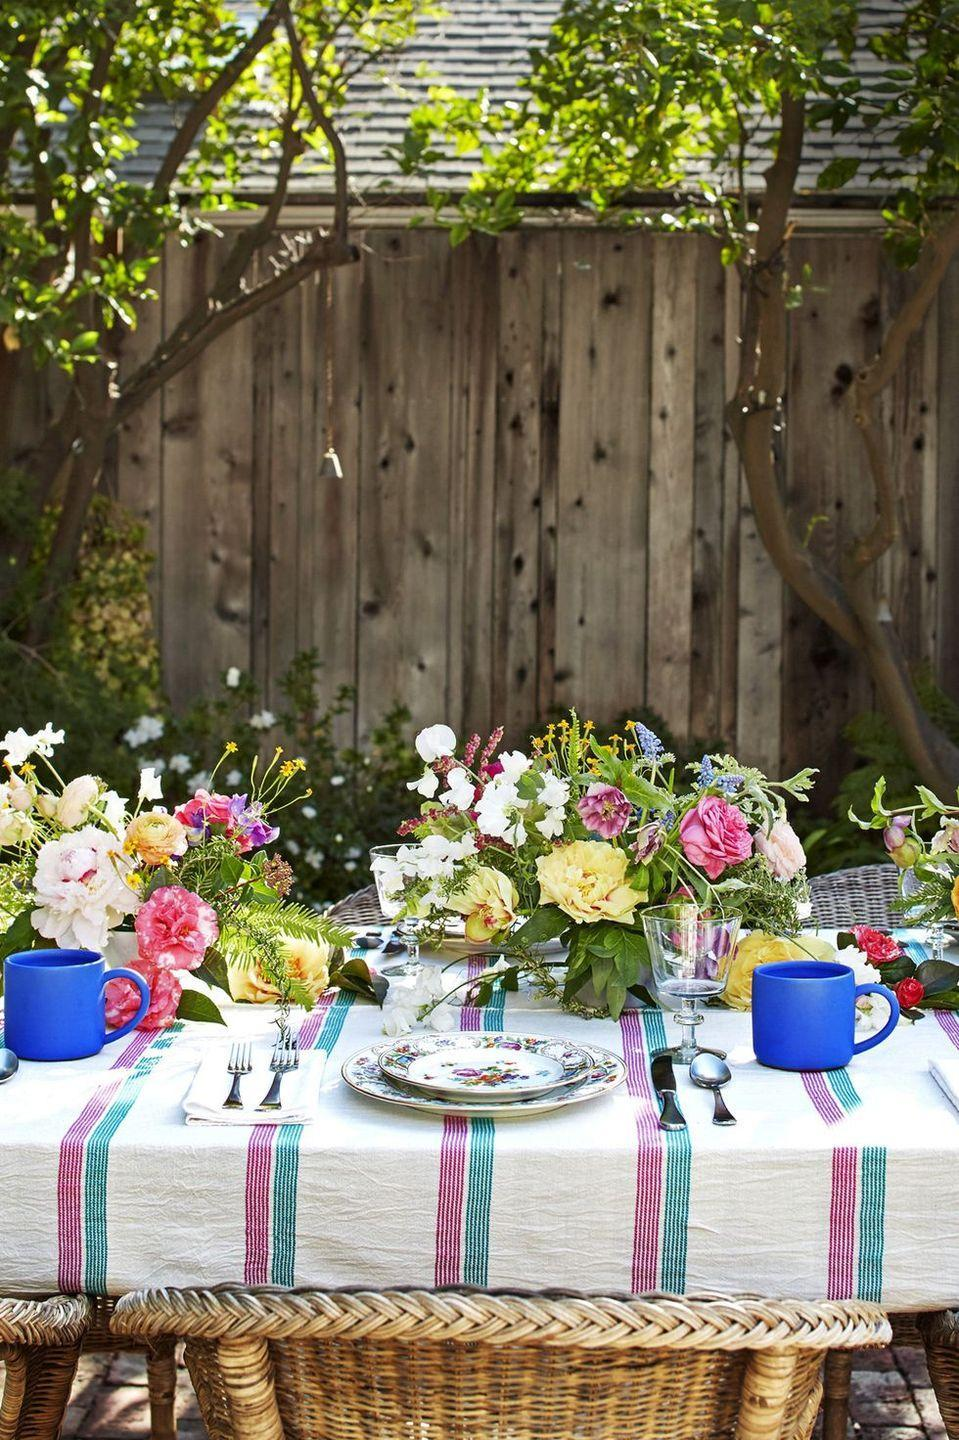 """<p>If you're hosting Easter brunch outside, opt for a wild, eclectic flower arrangement that blends in with the surrounding environment. Here, designer Heather Taylor recreated the motif on her great-grandmother's plates for a <a href=""""https://www.housebeautiful.com/entertaining/table-decor/a8163/tablescape-heather-taylor/"""" rel=""""nofollow noopener"""" target=""""_blank"""" data-ylk=""""slk:garden party"""" class=""""link rapid-noclick-resp"""">garden party</a>'s bouquets. """"Even if guests don't notice the reference, it's a lovely detail that adds a fun symmetry,"""" she says of the bluebells and marigolds.</p><p><strong><em>Crate & Barrel Speckle Vase, $50</em></strong> <a class=""""link rapid-noclick-resp"""" href=""""https://go.redirectingat.com?id=74968X1596630&url=https%3A%2F%2Fwww.crateandbarrel.com%2Fkinai-large-speckled-vase%2Fs100182&sref=https%3A%2F%2Fwww.housebeautiful.com%2Fentertaining%2Fflower-arrangements%2Fg19409803%2Feaster-flower-arrangements%2F"""" rel=""""nofollow noopener"""" target=""""_blank"""" data-ylk=""""slk:BUY NOW"""">BUY NOW</a></p>"""